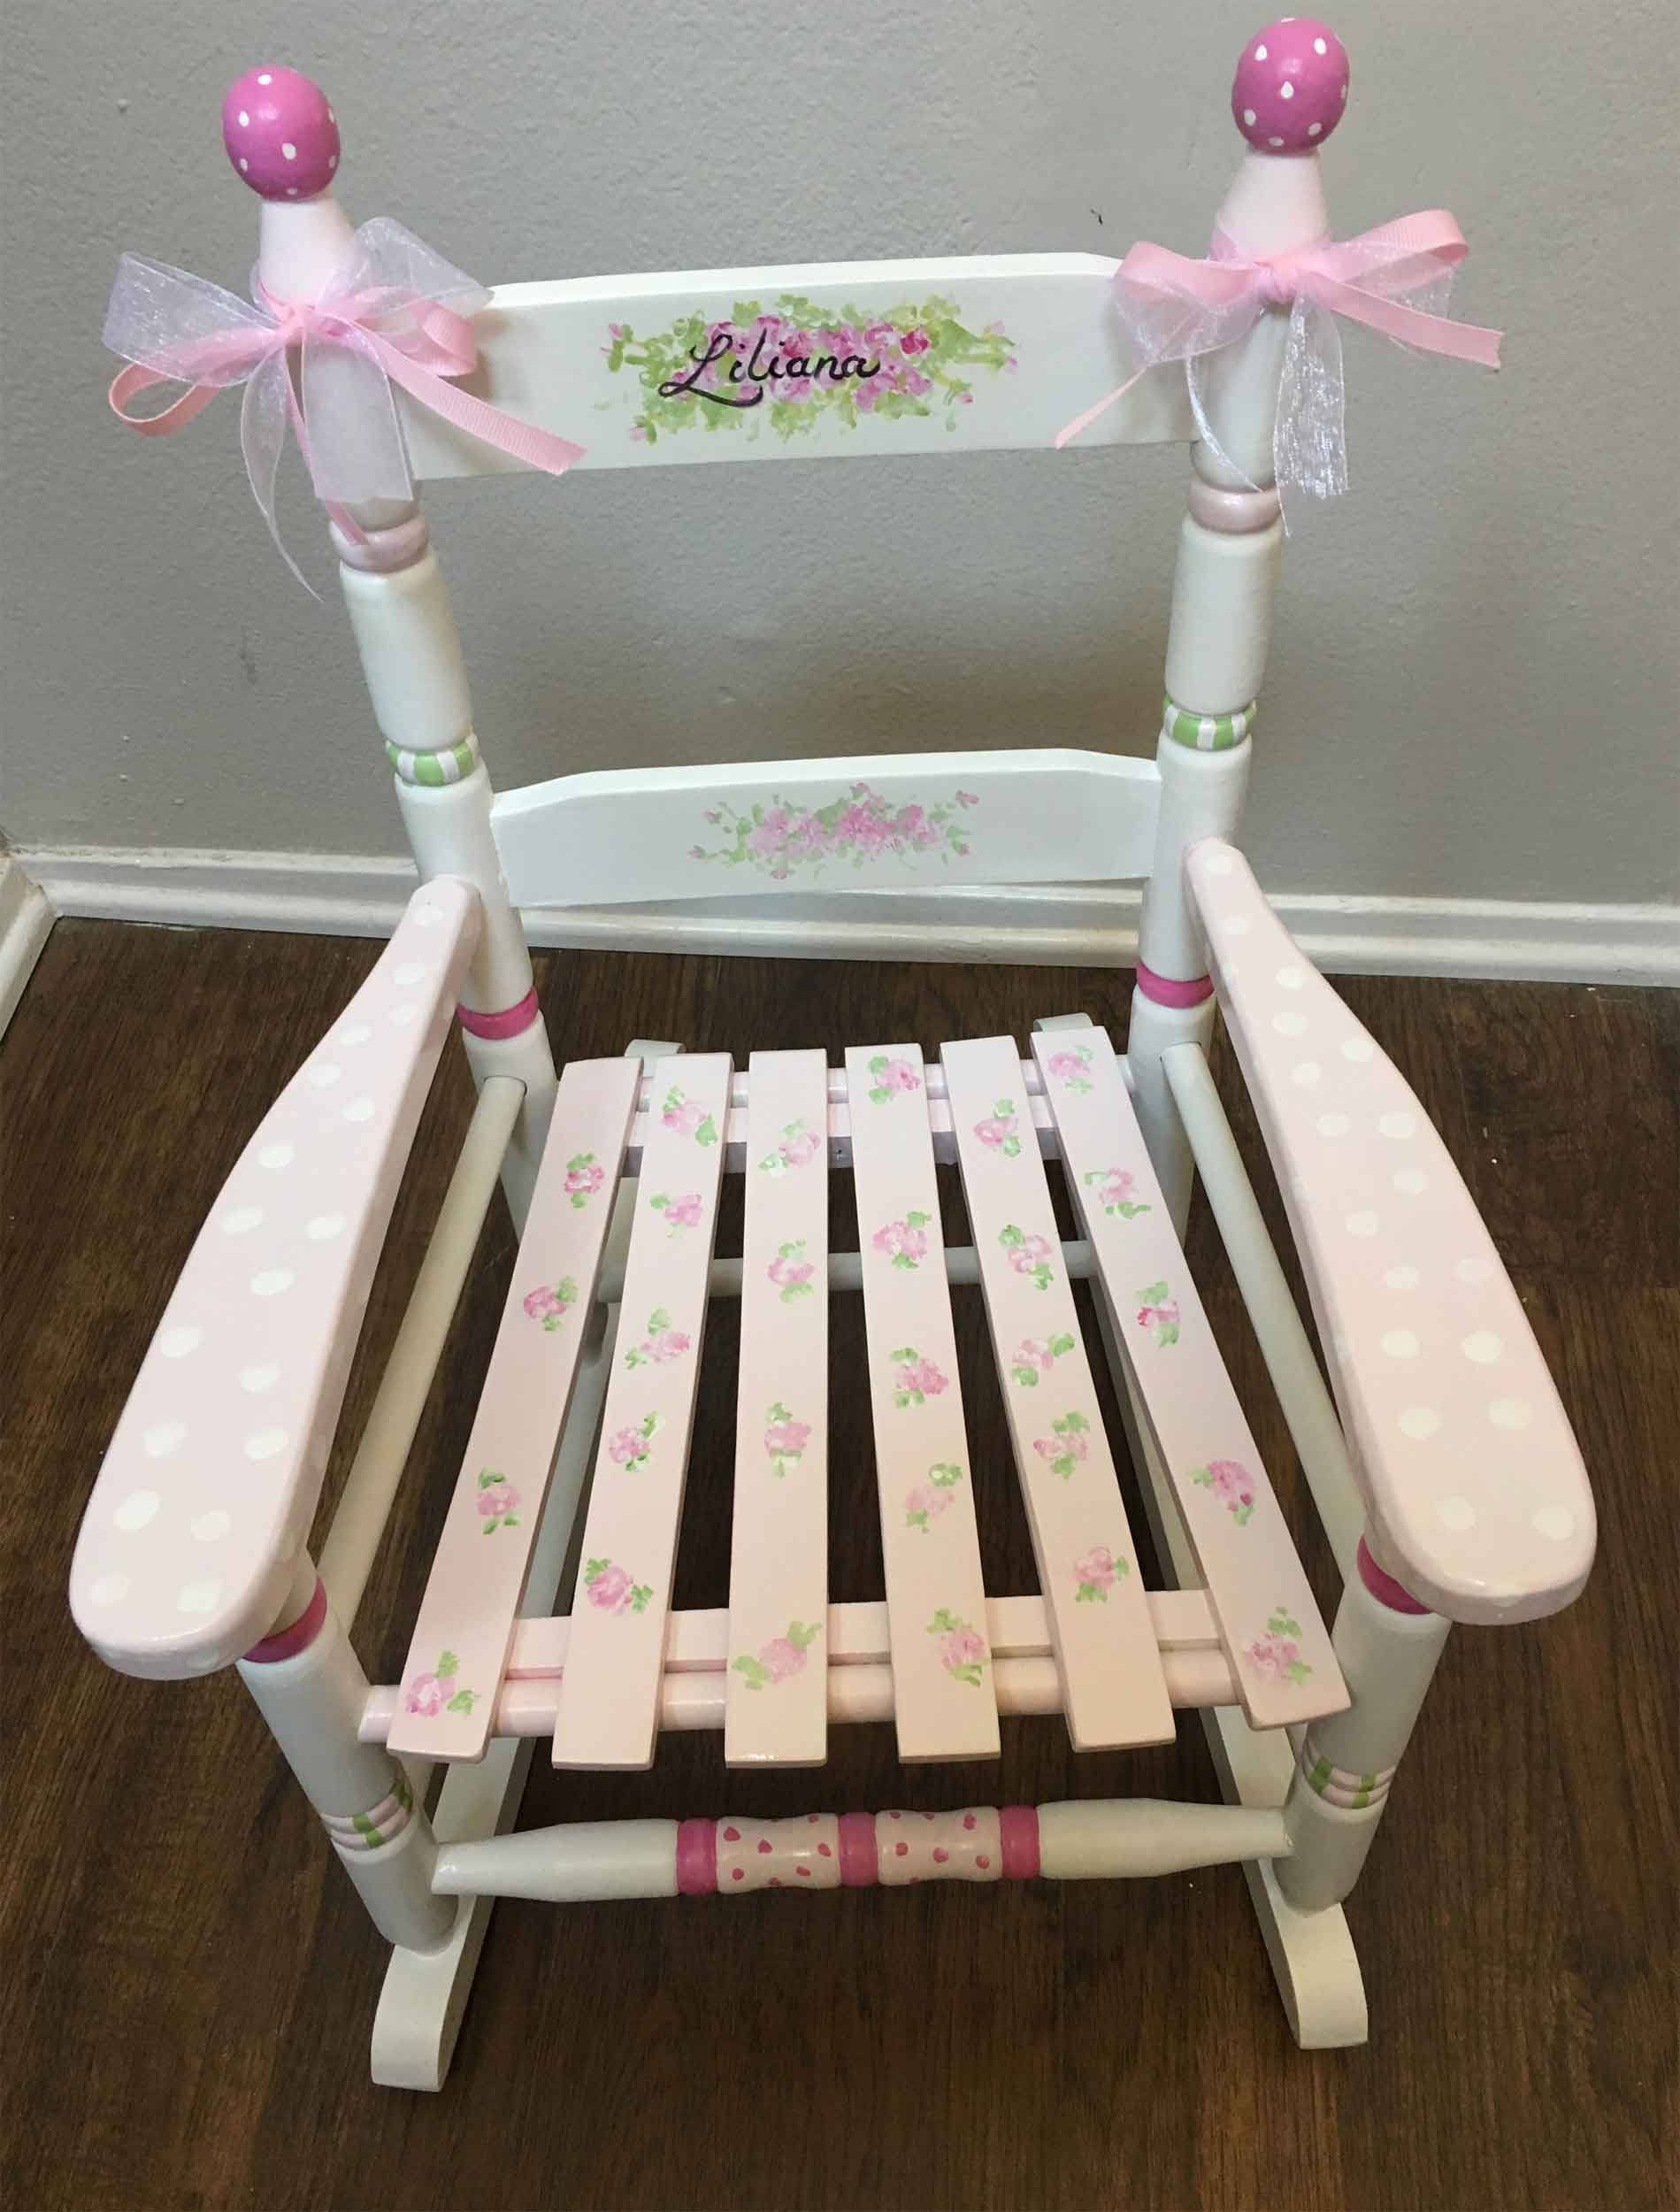 little girls chair on pink flower cottage rocker girls rocking chair hand painted rocking chair child s rocking chai painted rocking chairs kids rocking chair girls rocking chair painted rocking chairs